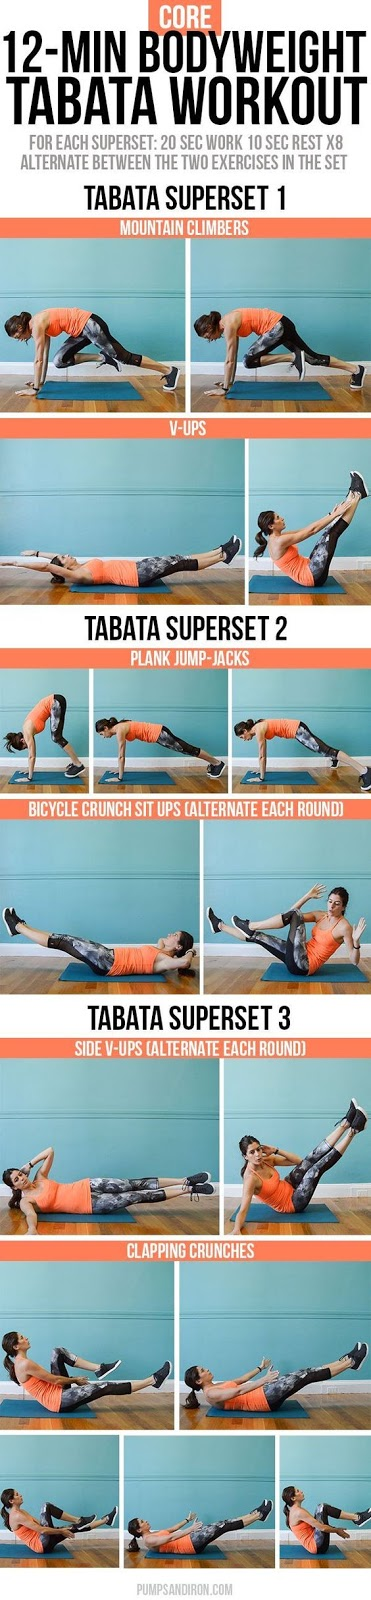 12-Minute Bodyweight Tabata Workout Series